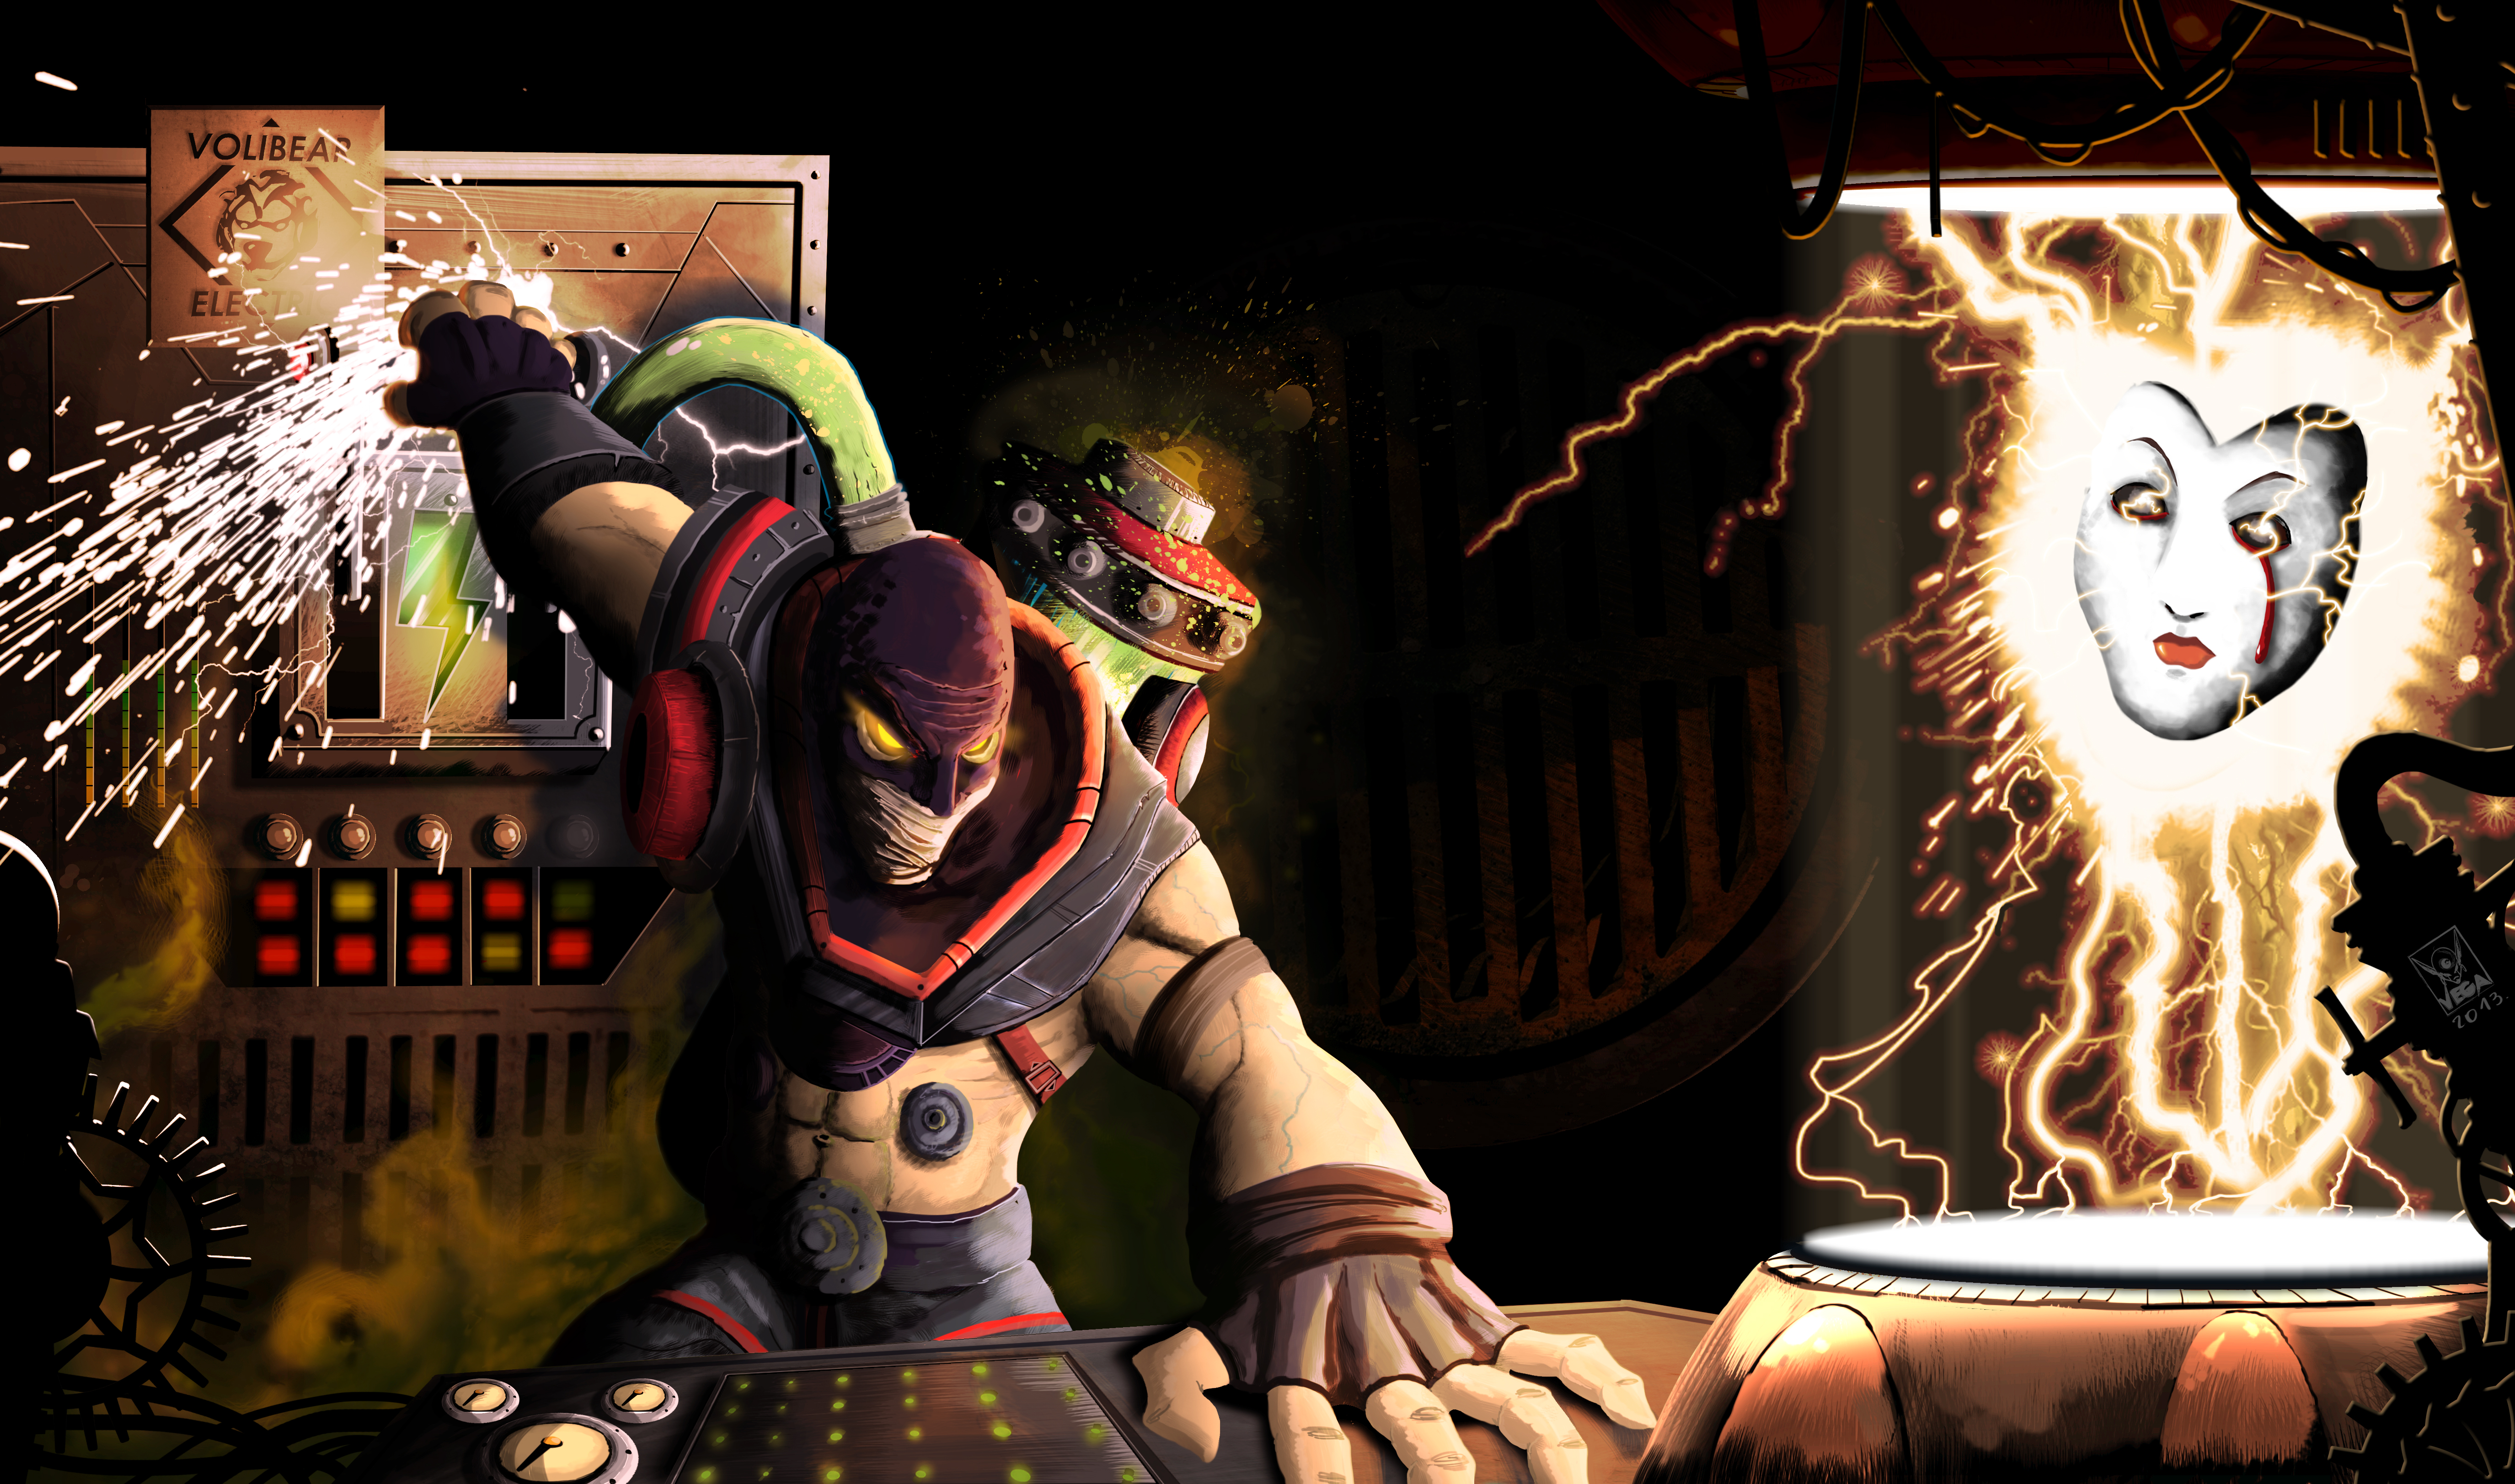 Singed Wallpaper - Lol Animated Wallpaper Singed , HD Wallpaper & Backgrounds